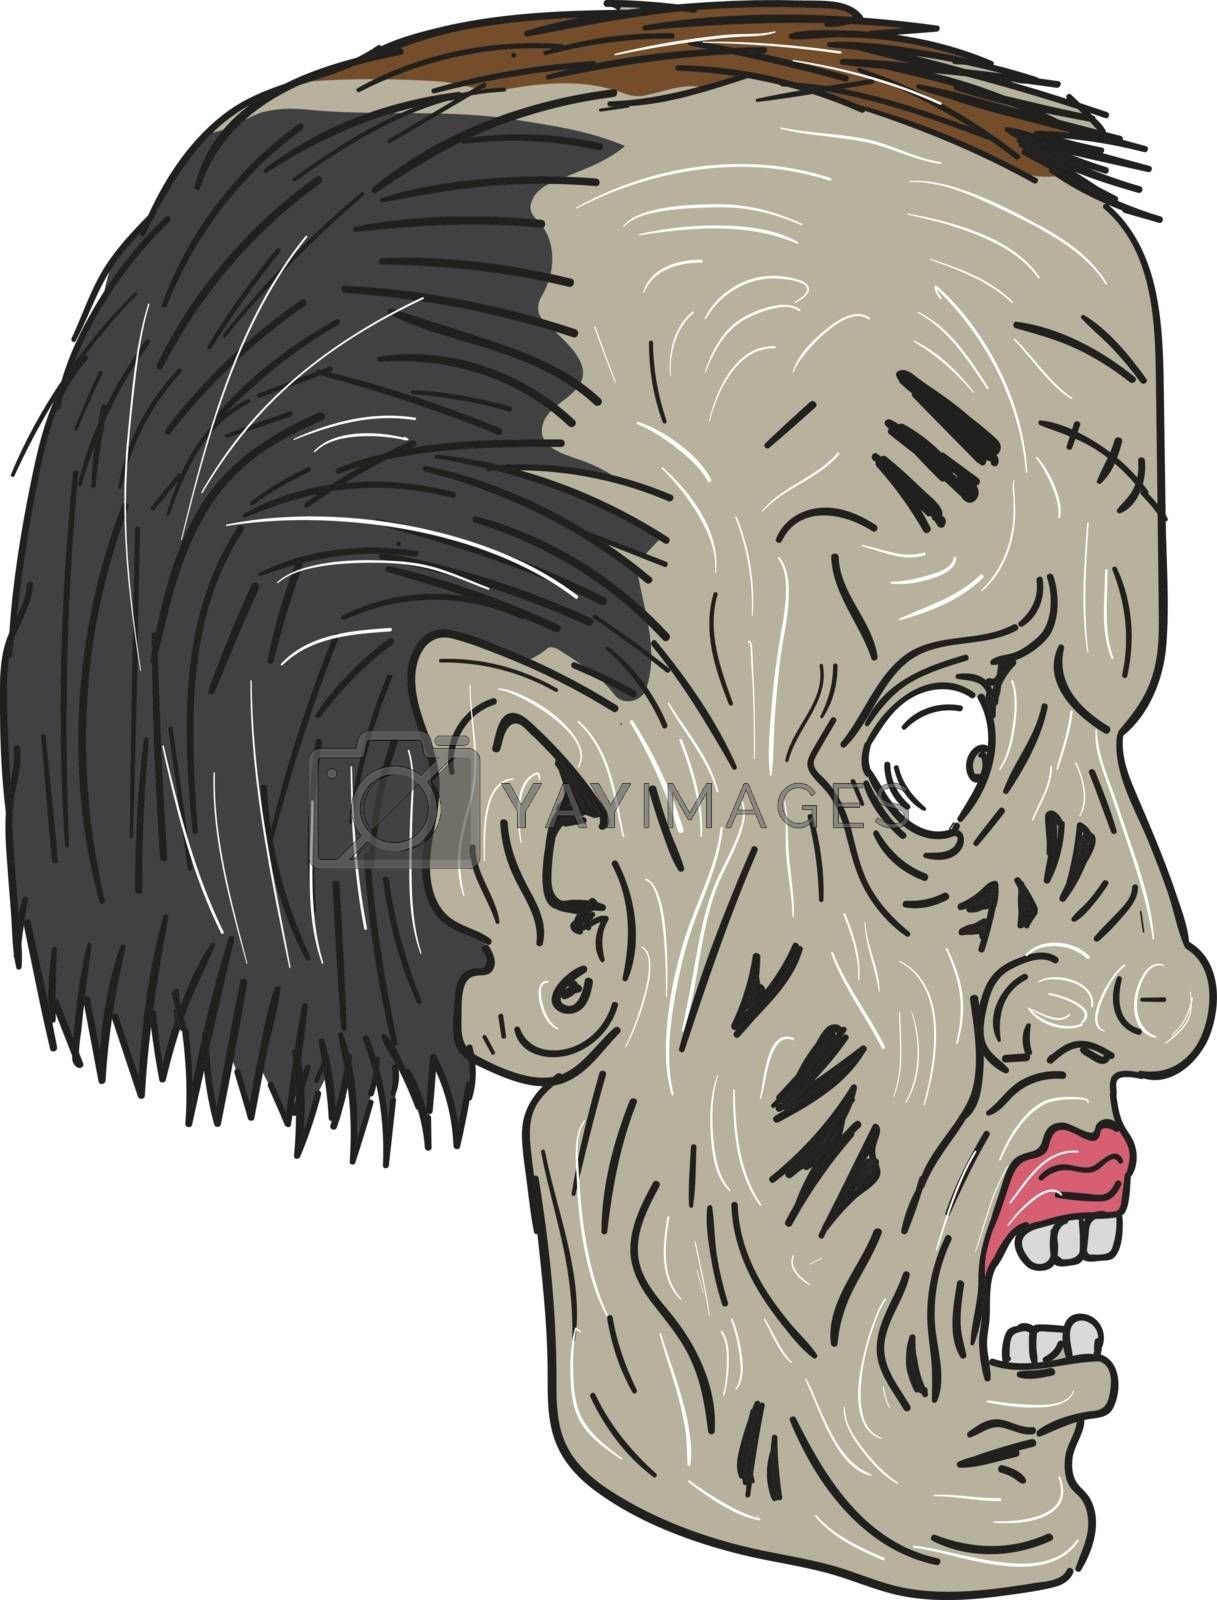 Drawing sketch style illustration of a zombie skull head viewed from the side set on isolated white background.